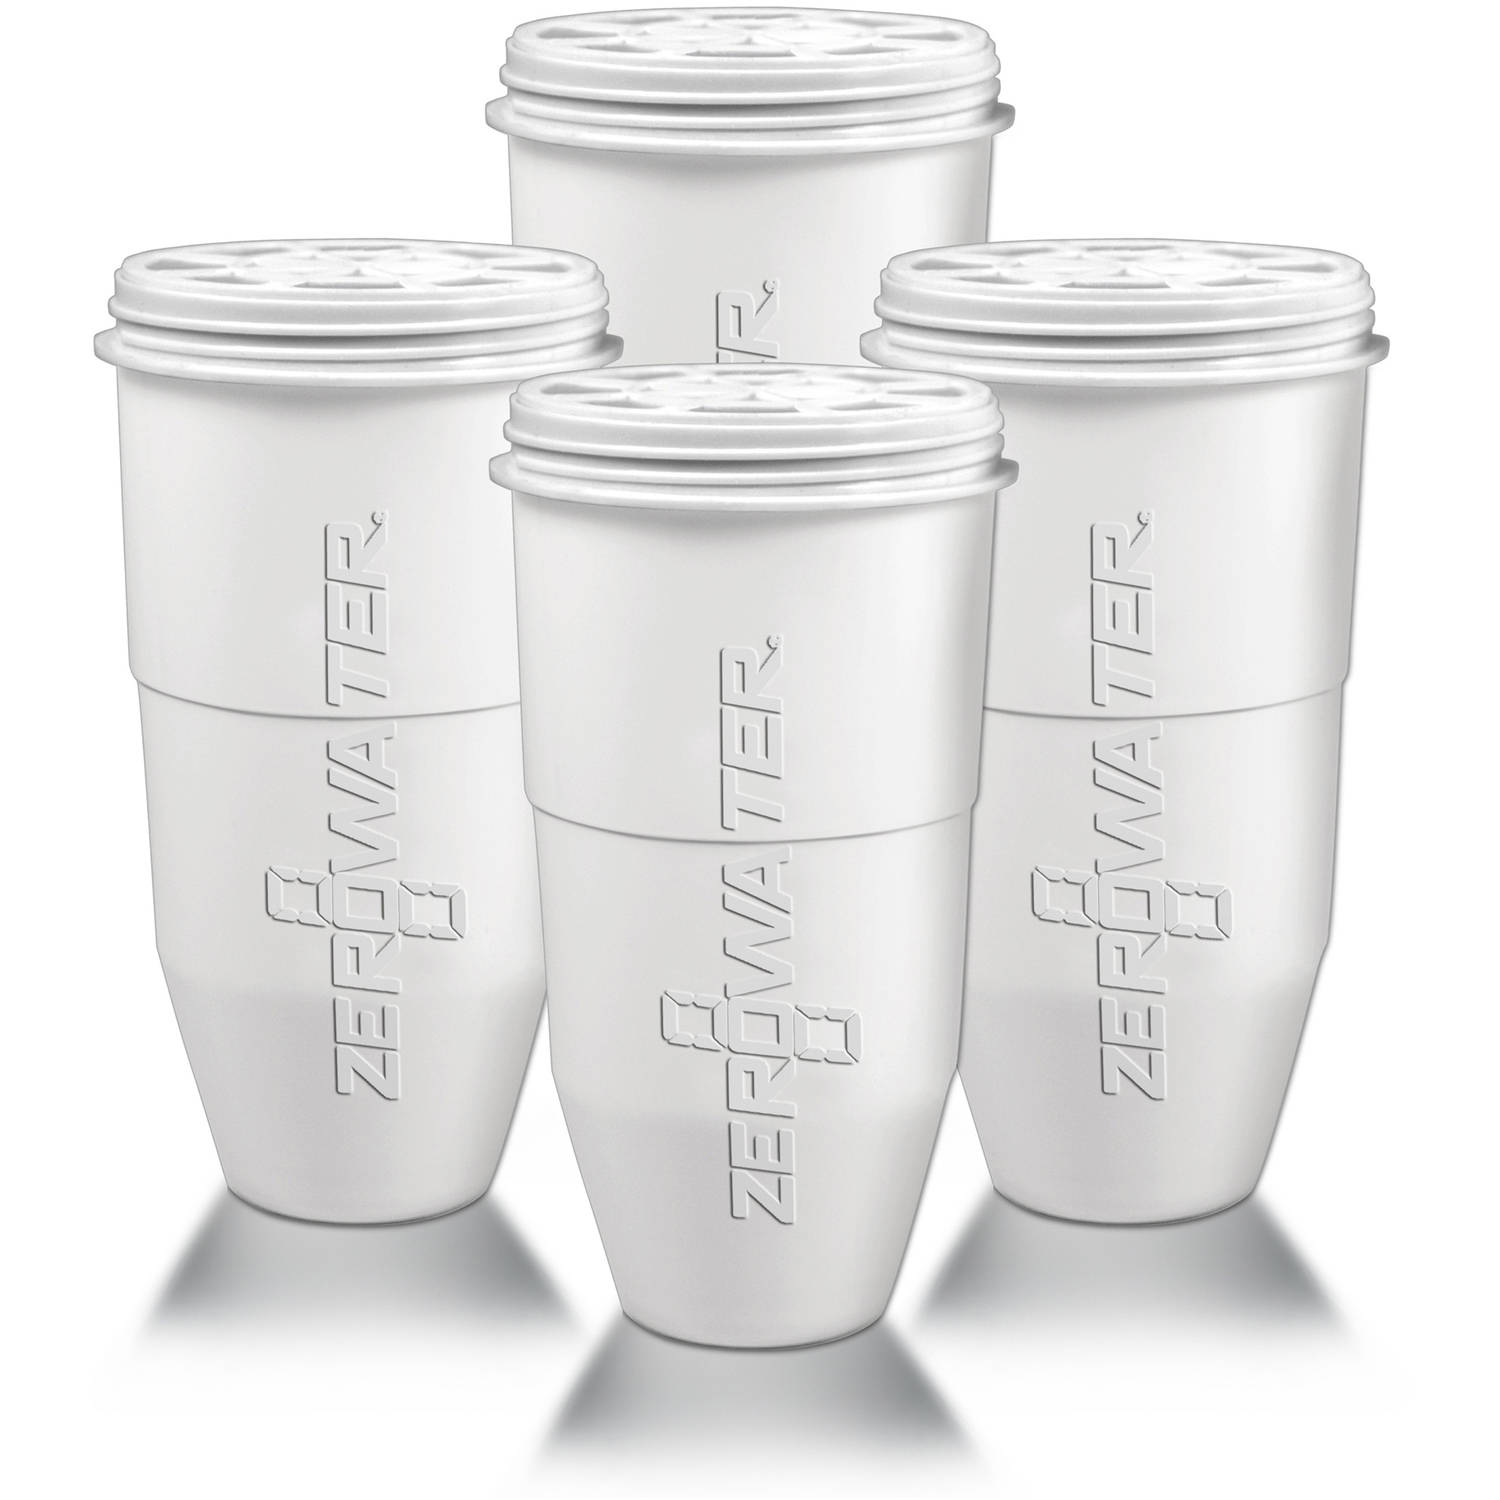 ZeroWater Replacement Filter for Pitchers, 4-Pack